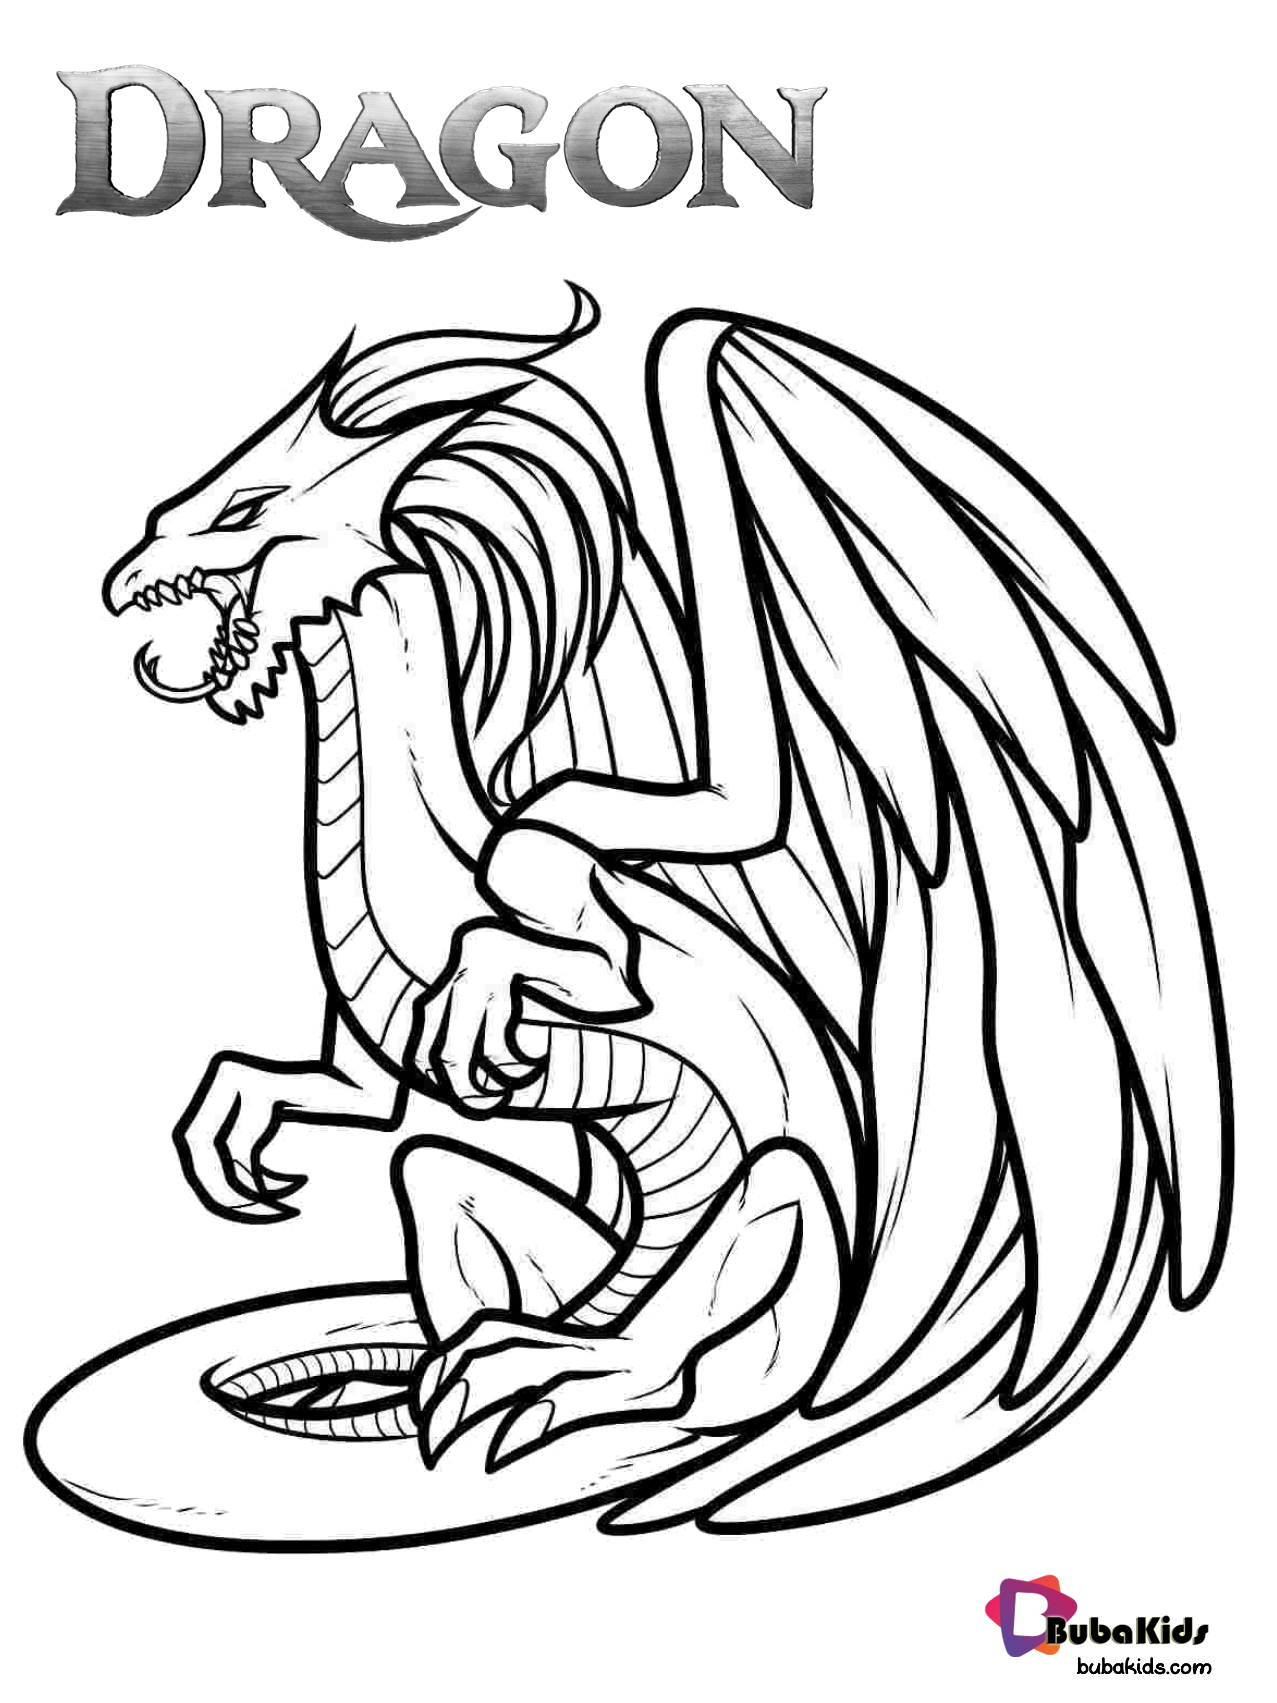 Dragon the mythical creature free coloring page. in 2020 ...